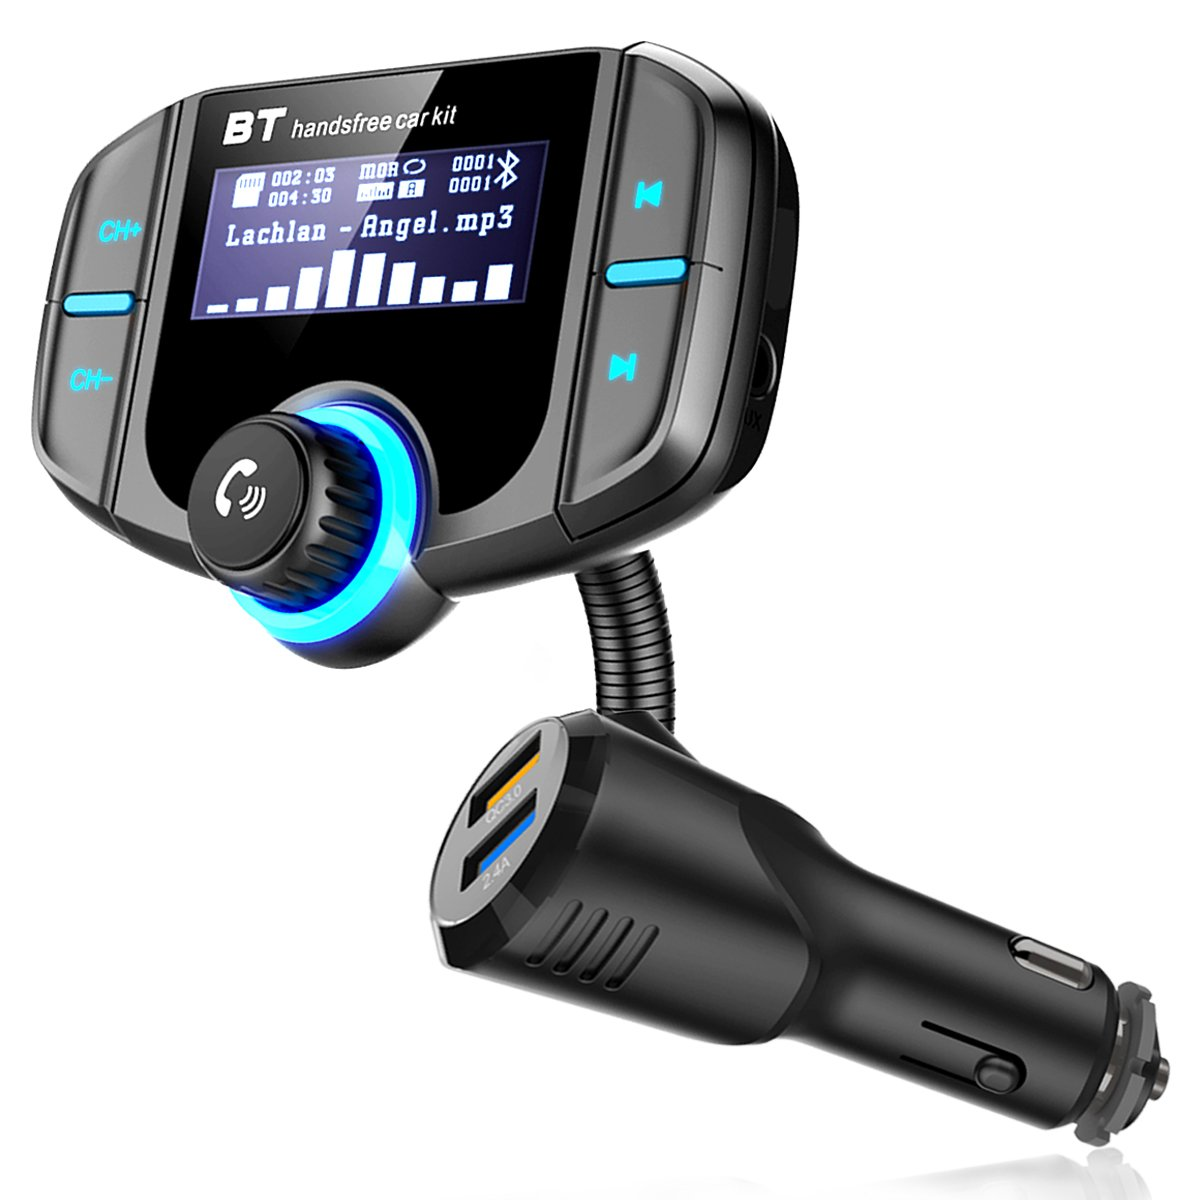 TF Card,AUX Input//Output Mp3//MP4 Player Techfly 4351503829 Bluetooth FM Transmitter,Wireless In-car Radio Adapter Hands-free Car Kit with 1.7 Inch Display QC3.0 Quick Charger 2.4A Dual USB Ports